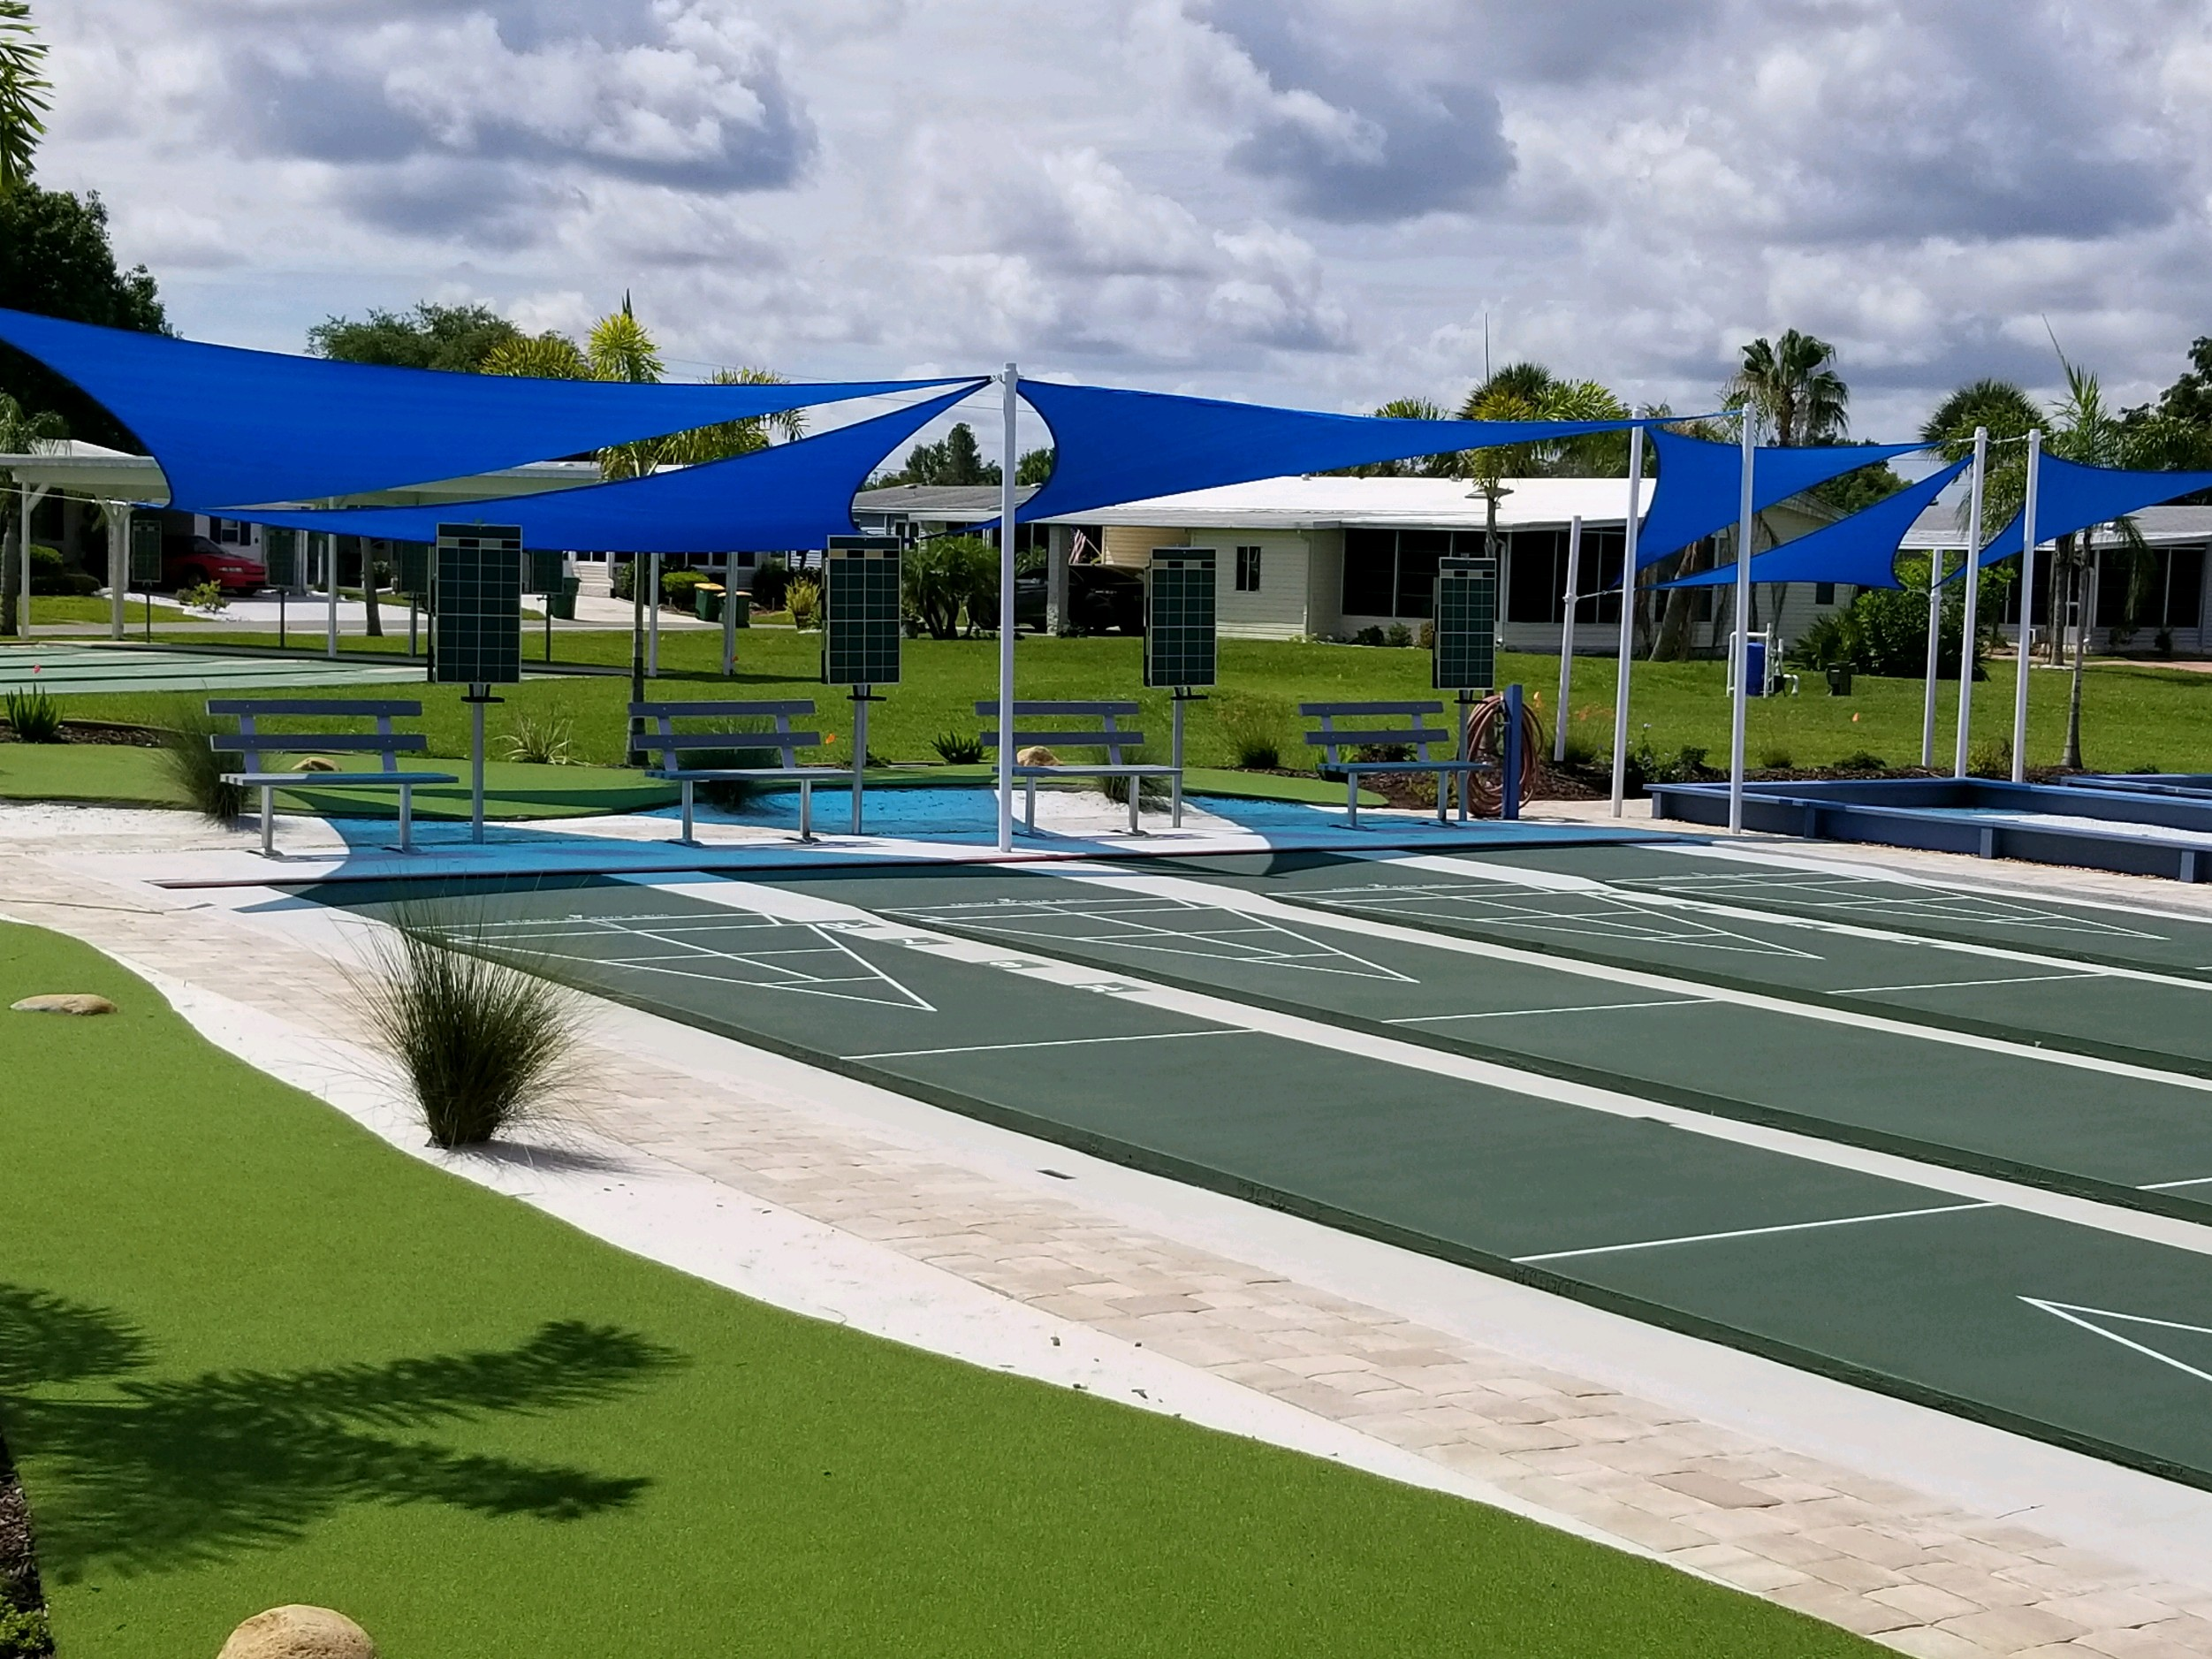 Shade Sails over Shuffkeboard Courts.jpg